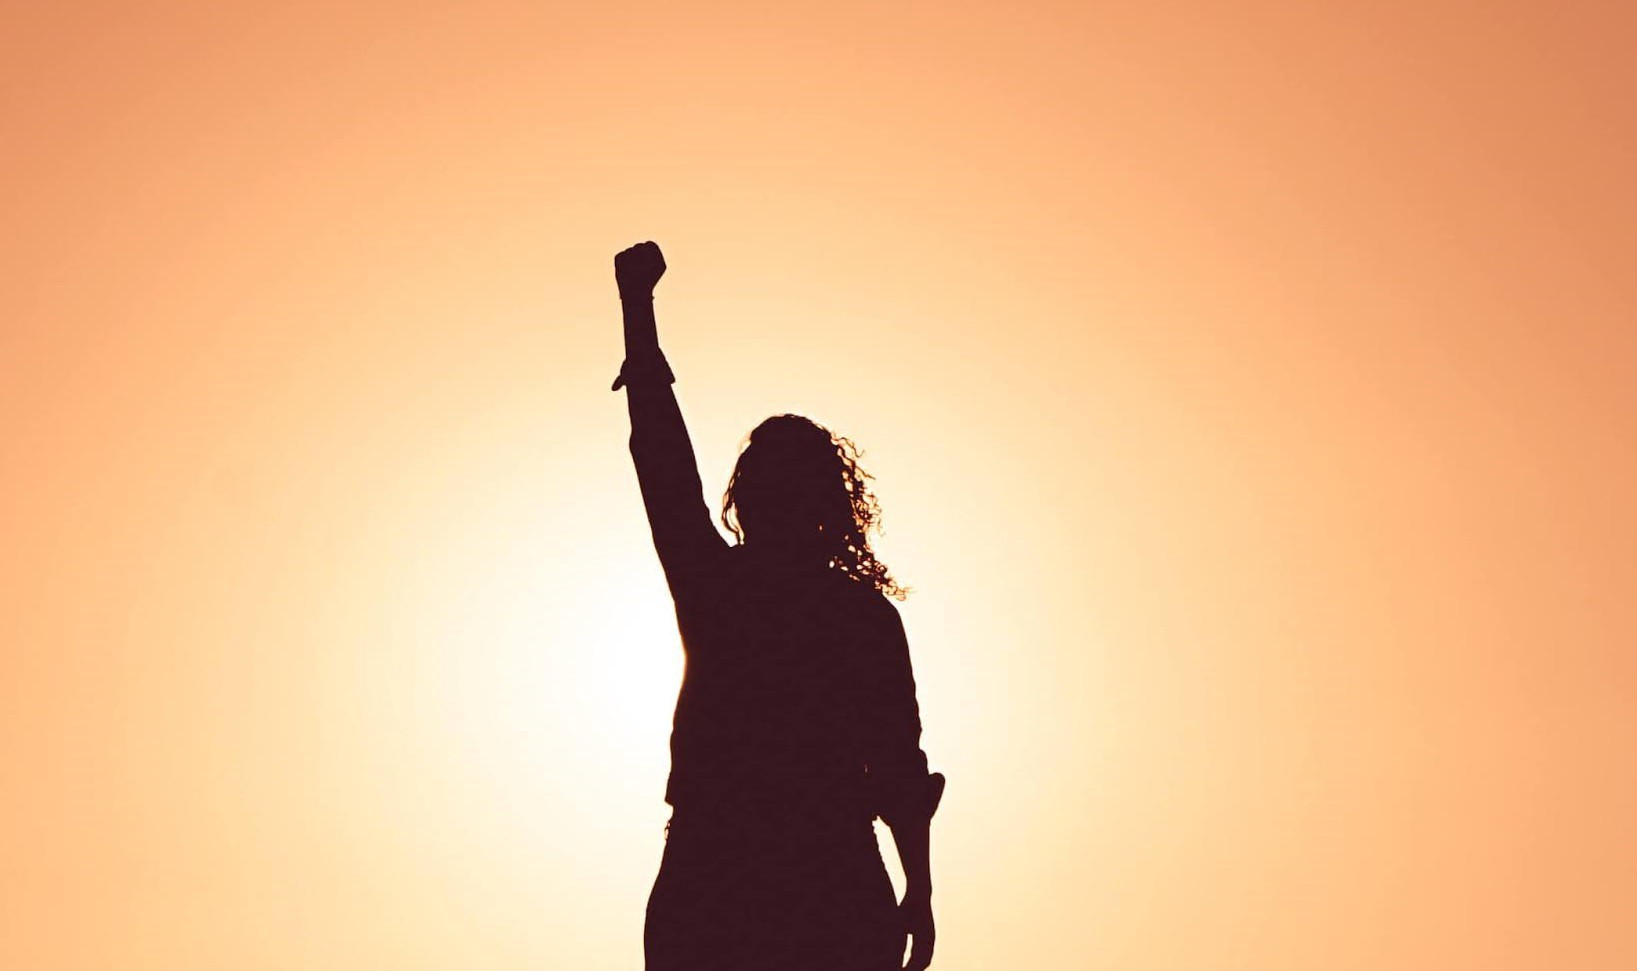 Woman as shadow figure raising the fist in the air and an orange sunny background